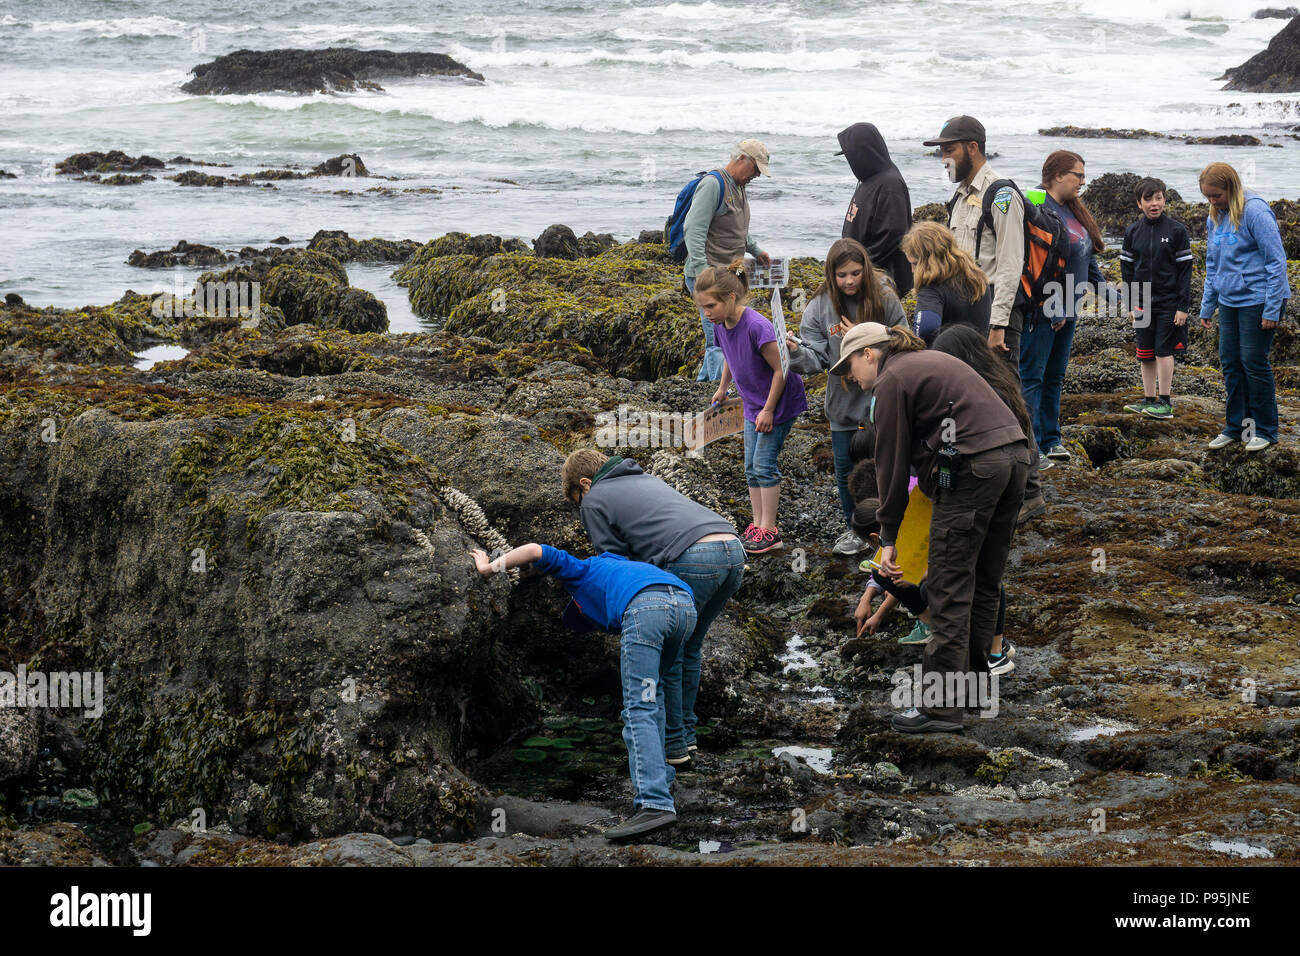 Schoolkids on a educational school trip to discover the tidepools sea life with rangers at Cobble Beach, Yaquina Head Outstanding Natural Area, Oregon - Stock Image